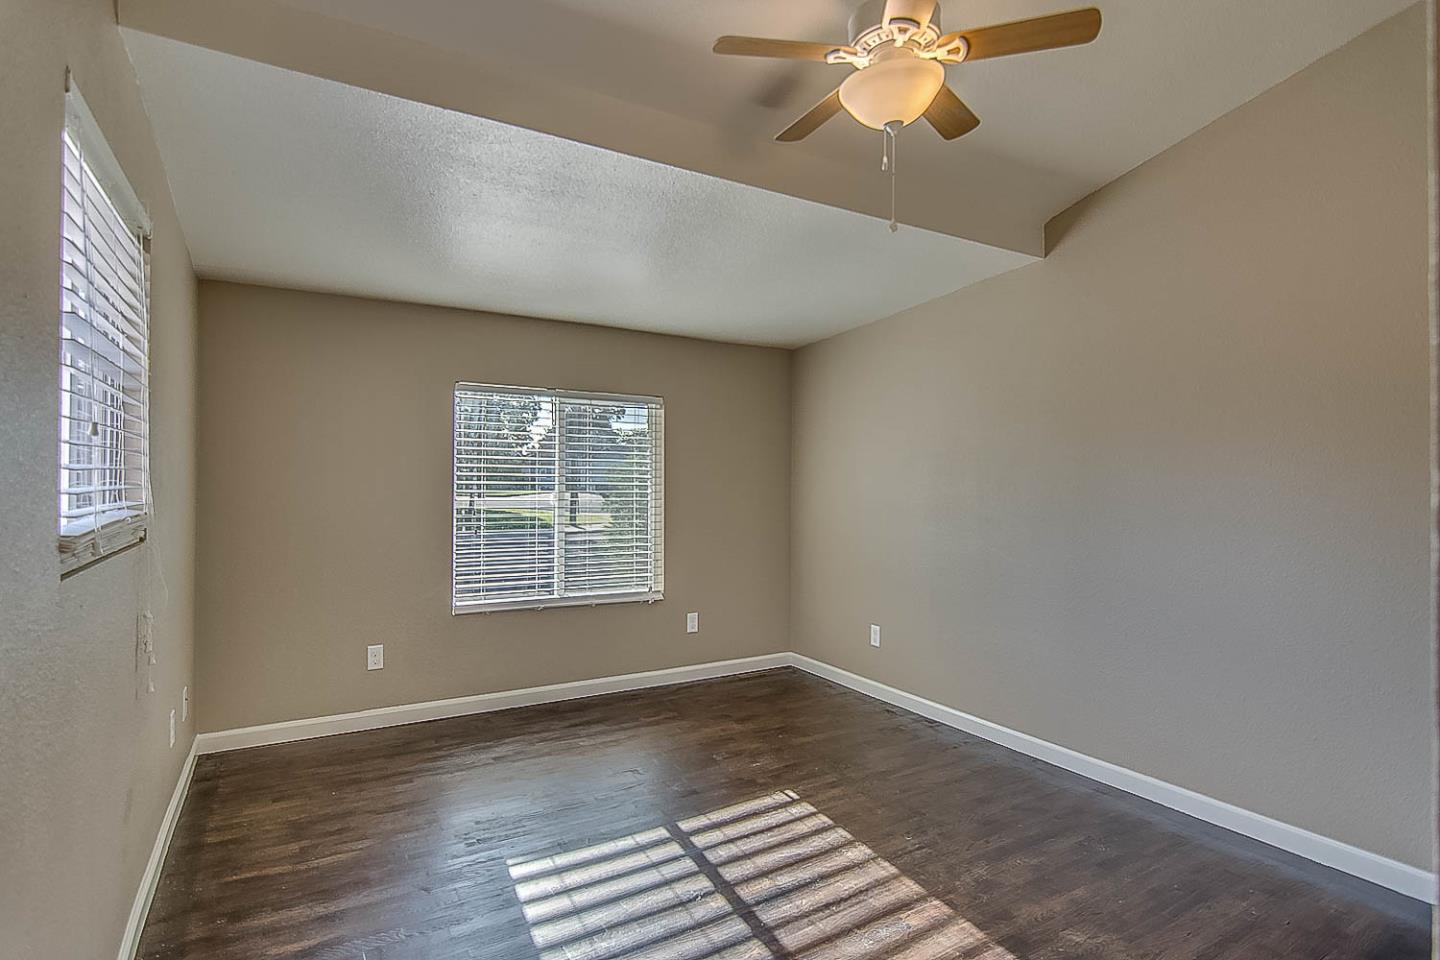 Additional photo for property listing at 3628 Kirk Street  Stockton, California 95204 Estados Unidos